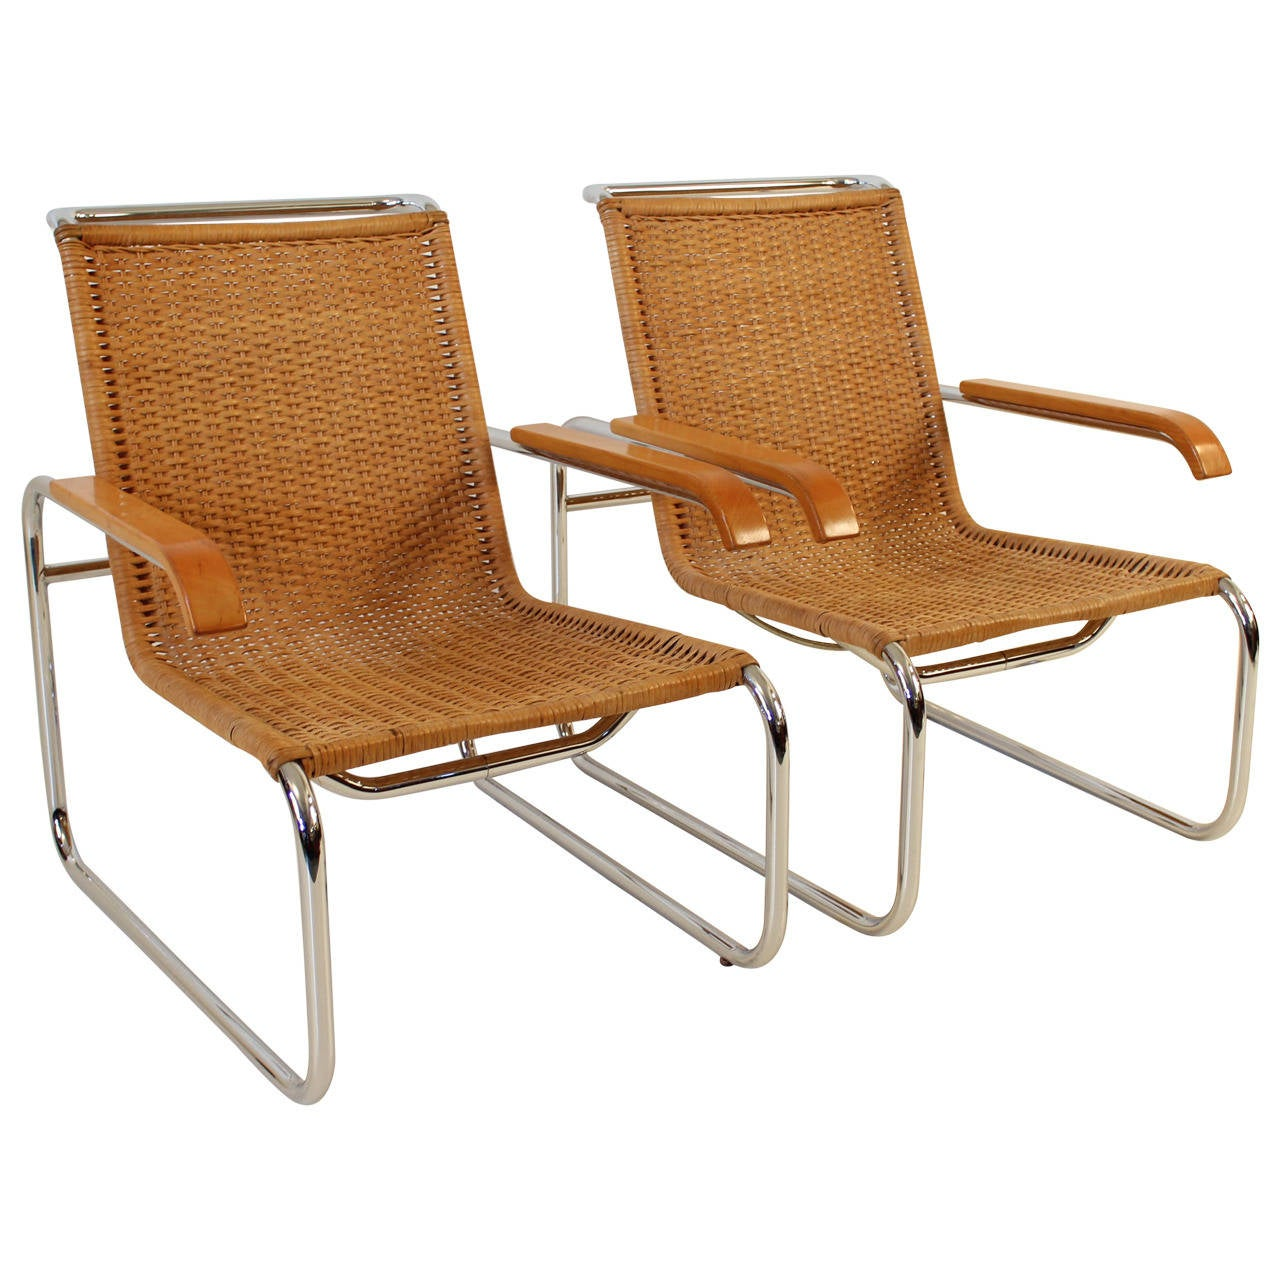 Gentil Nice Pair Of B35 Lounge Chairs By Marcel Breuer For Thonet For Sale